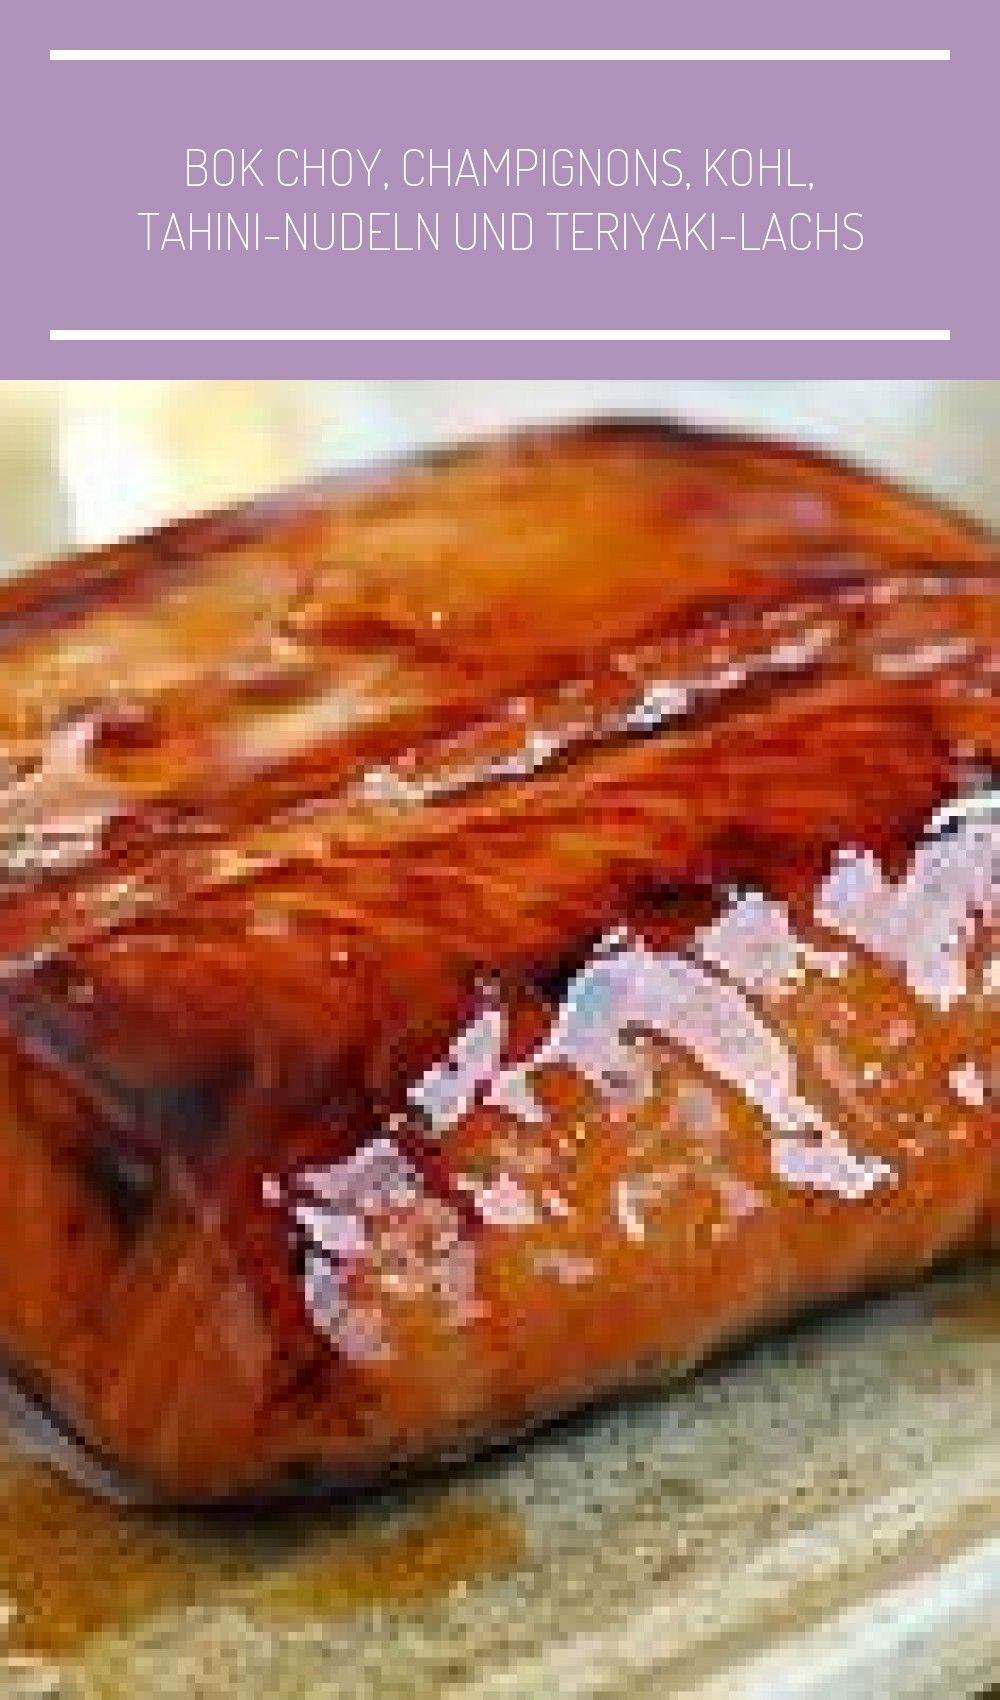 Salmon Teriyaki | Salmon Teriyaki Recipe | Easy Asian Recipes at RasaMalaysia.com #salmonteriyaki Salmon Teriyaki | Salmon Teriyaki Recipe | Easy Asian Recipes at RasaMalaysia.com #teriyakisalmon Salmon Teriyaki | Salmon Teriyaki Recipe | Easy Asian Recipes at RasaMalaysia.com #salmonteriyaki Salmon Teriyaki | Salmon Teriyaki Recipe | Easy Asian Recipes at RasaMalaysia.com #asian recipes teriyaki #salmonteriyaki Salmon Teriyaki | Salmon Teriyaki Recipe | Easy Asian Recipes at RasaMalaysia.com #s #teriyakisalmon